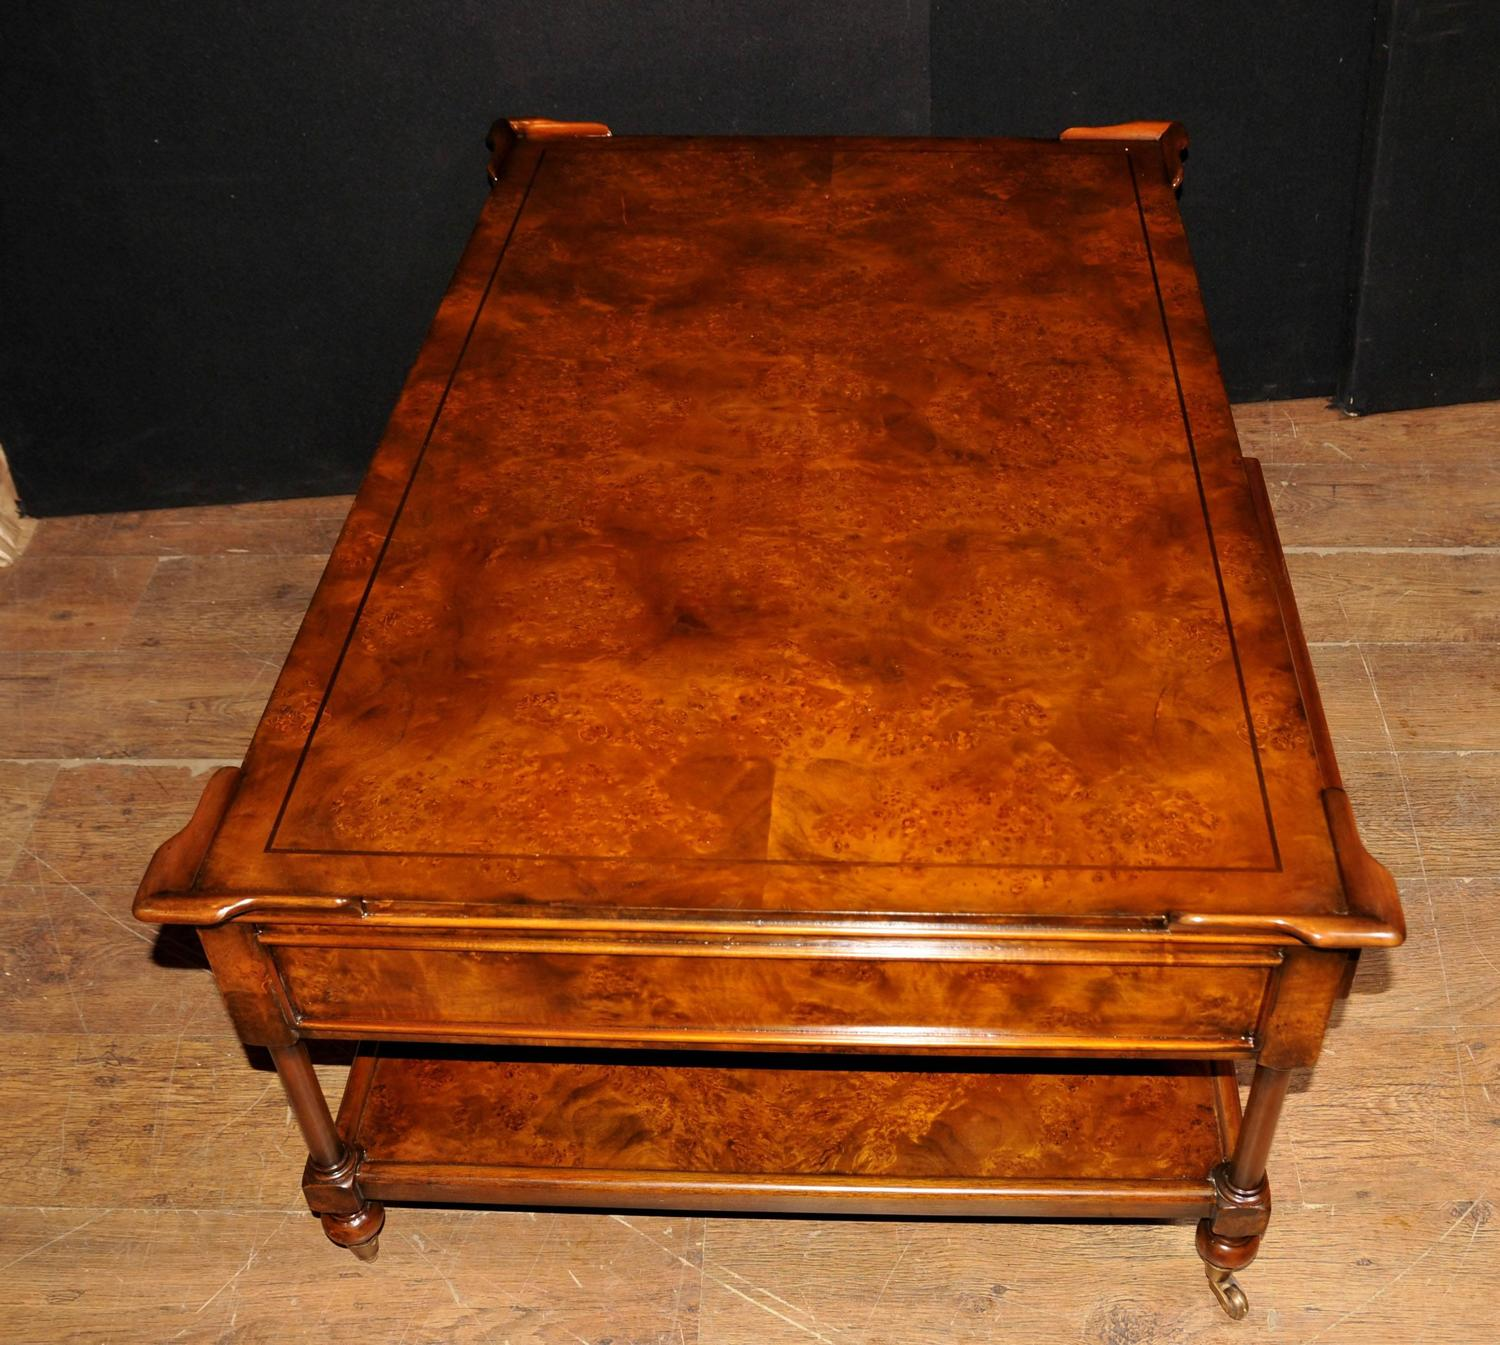 Regency Style Coffee Table Burr Walnut Tables For Sale at